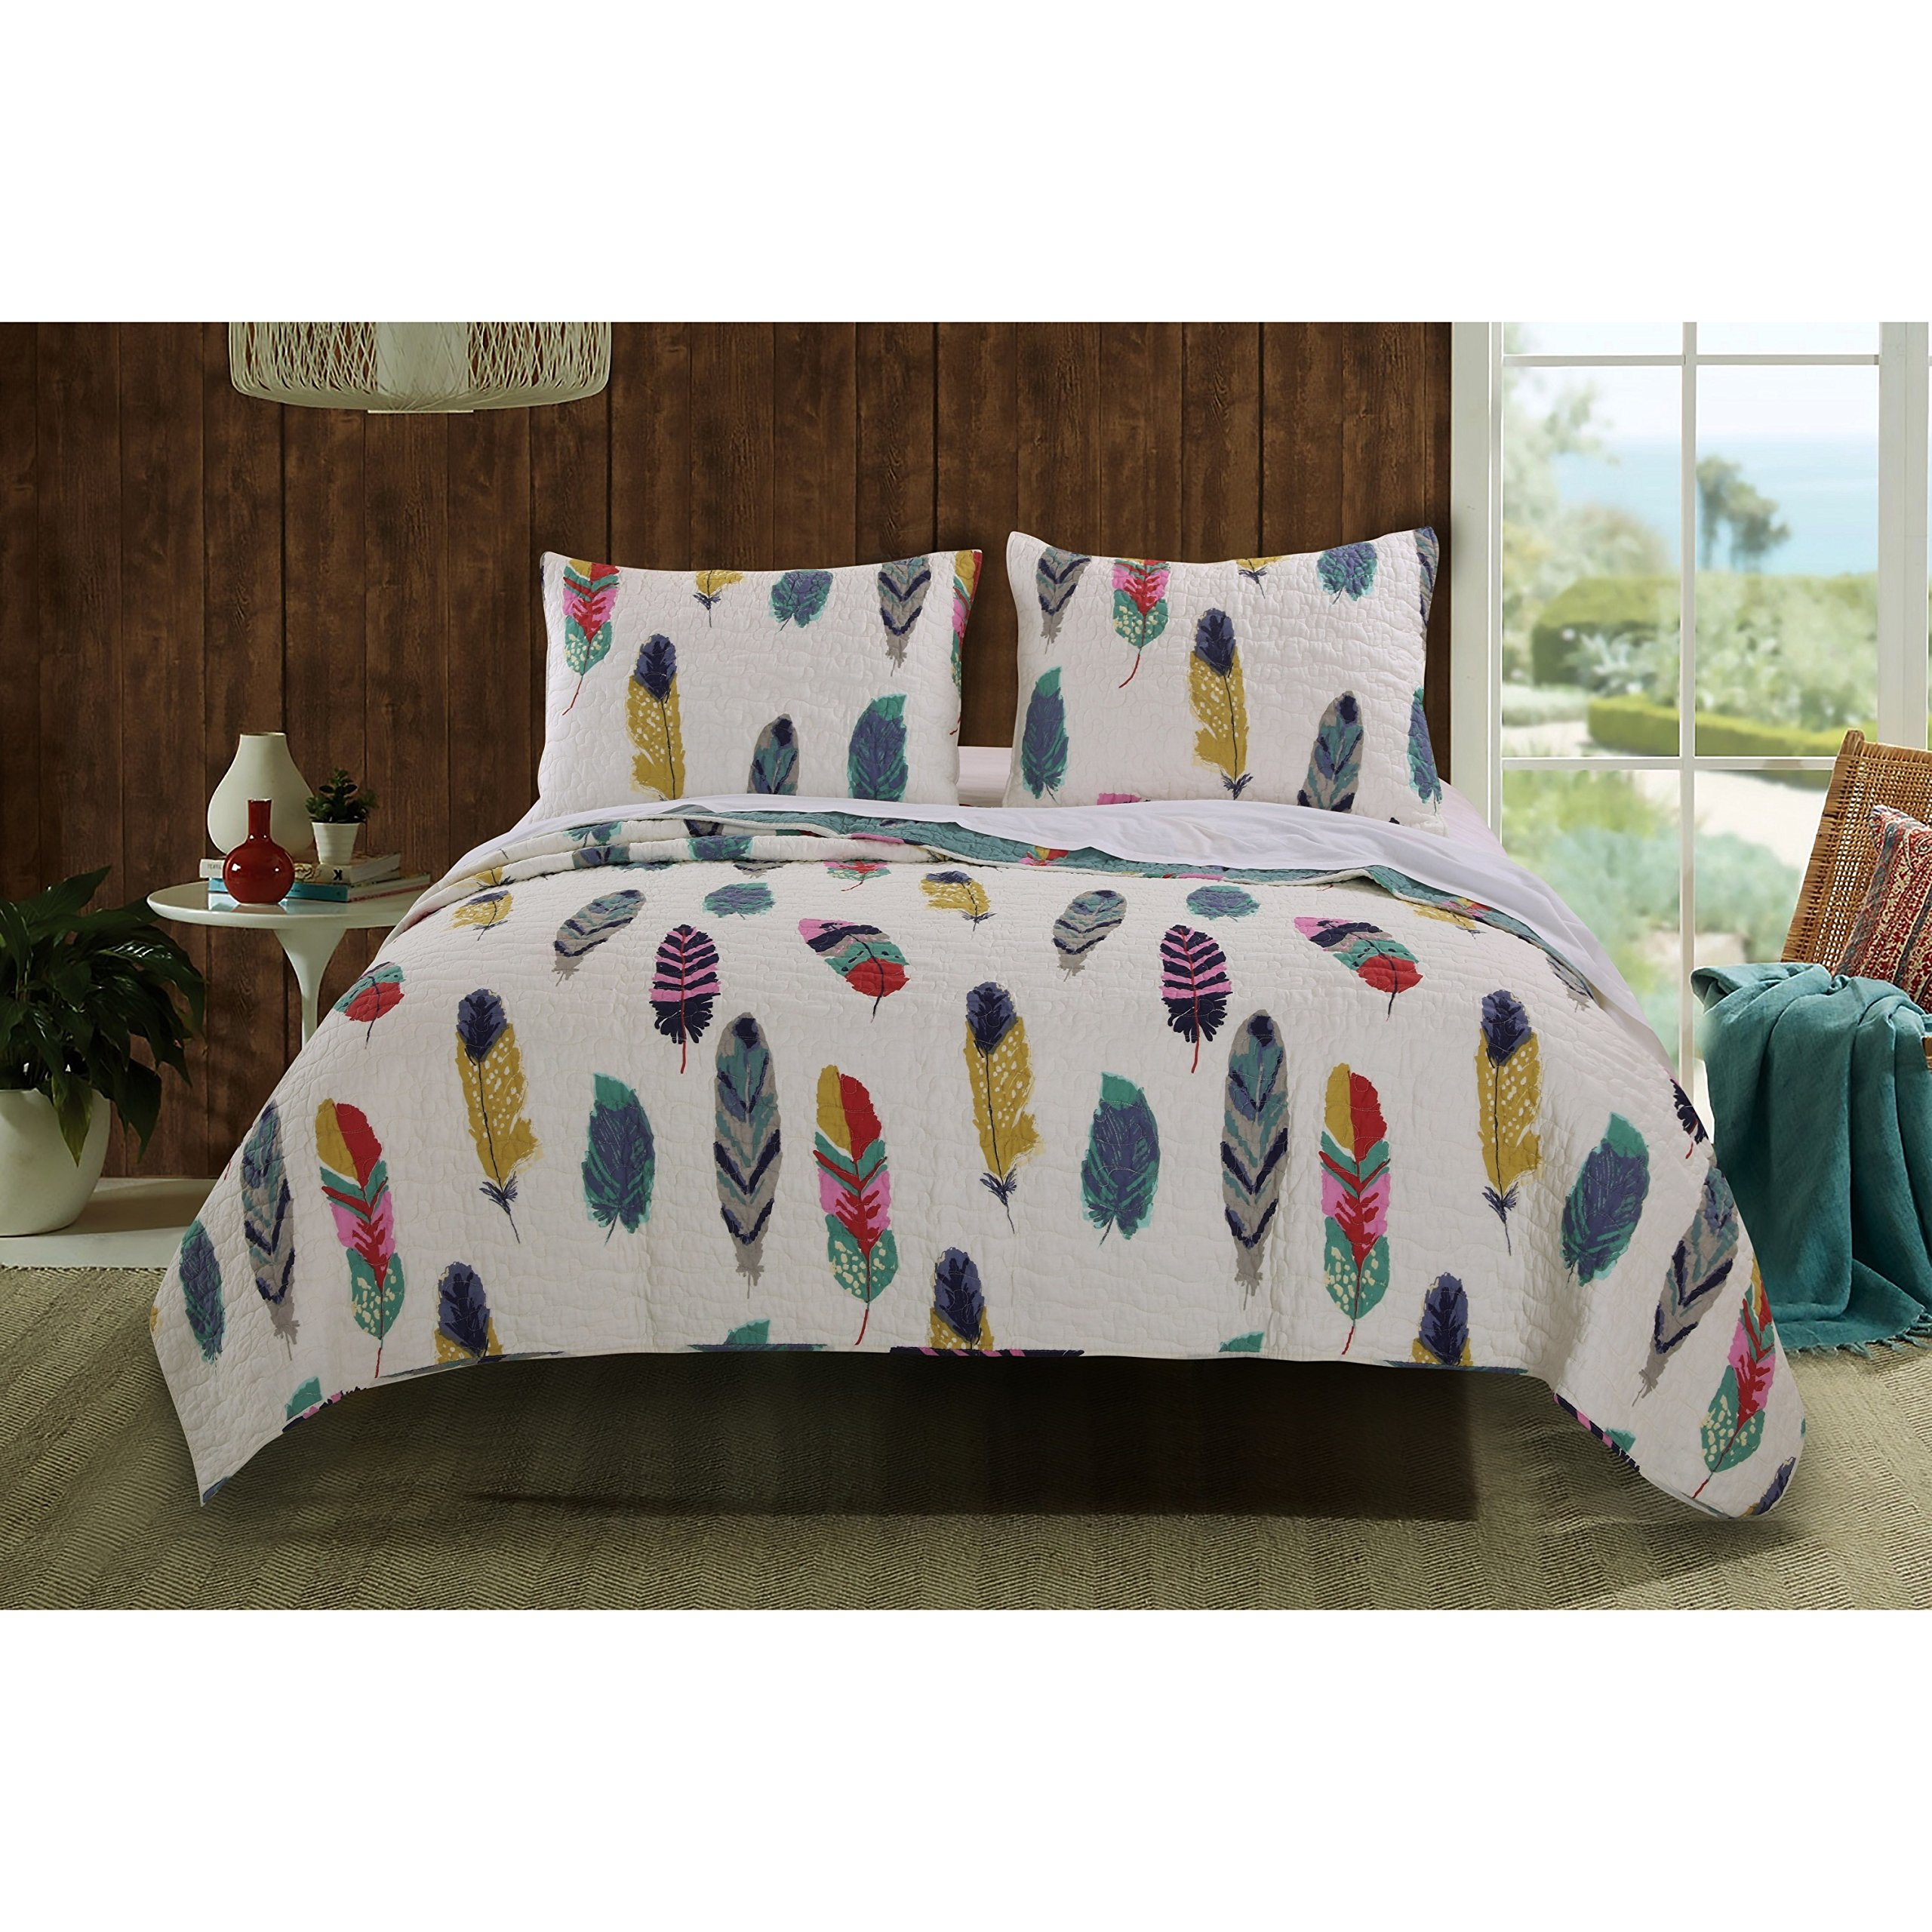 style blue american bedding discount comforter ross bed cal california designs southwestern comforters king sets